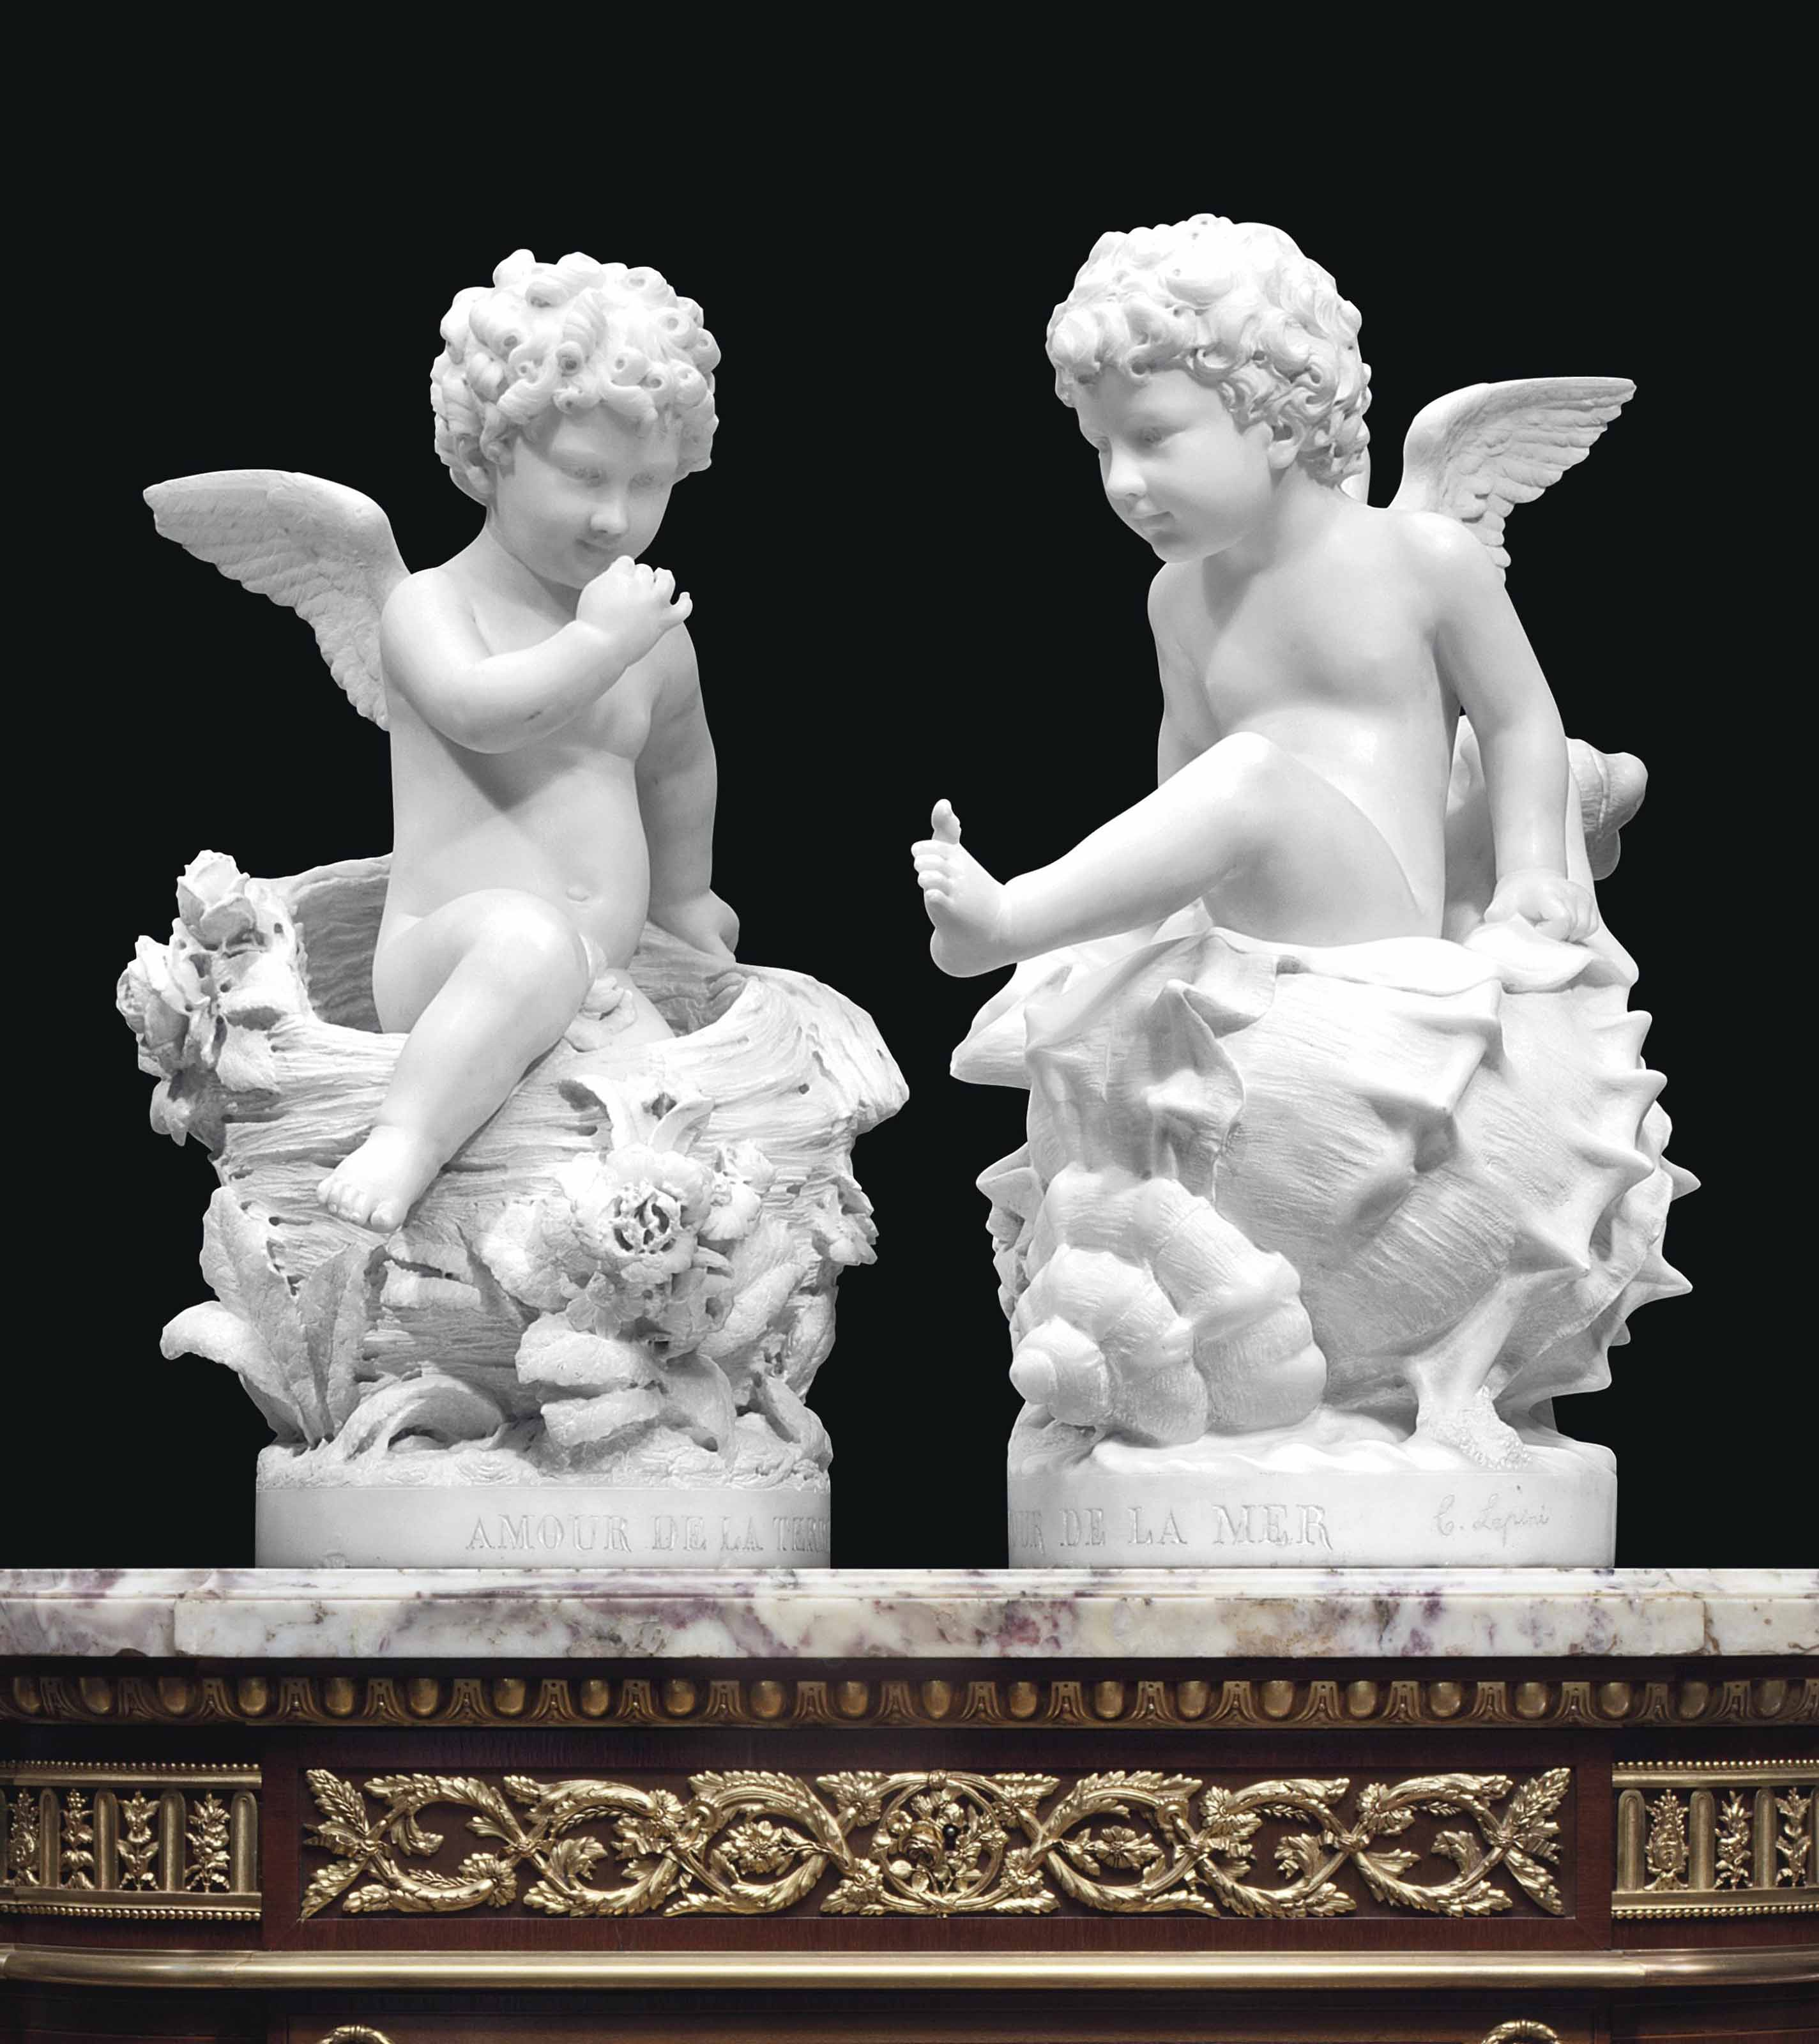 A PAIR OF ITALIAN WHITE MARBLE FIGURES OF PUTTI TITLED 'AMOUR DE LA MER' AND 'AMOUR DE LA TERRE'